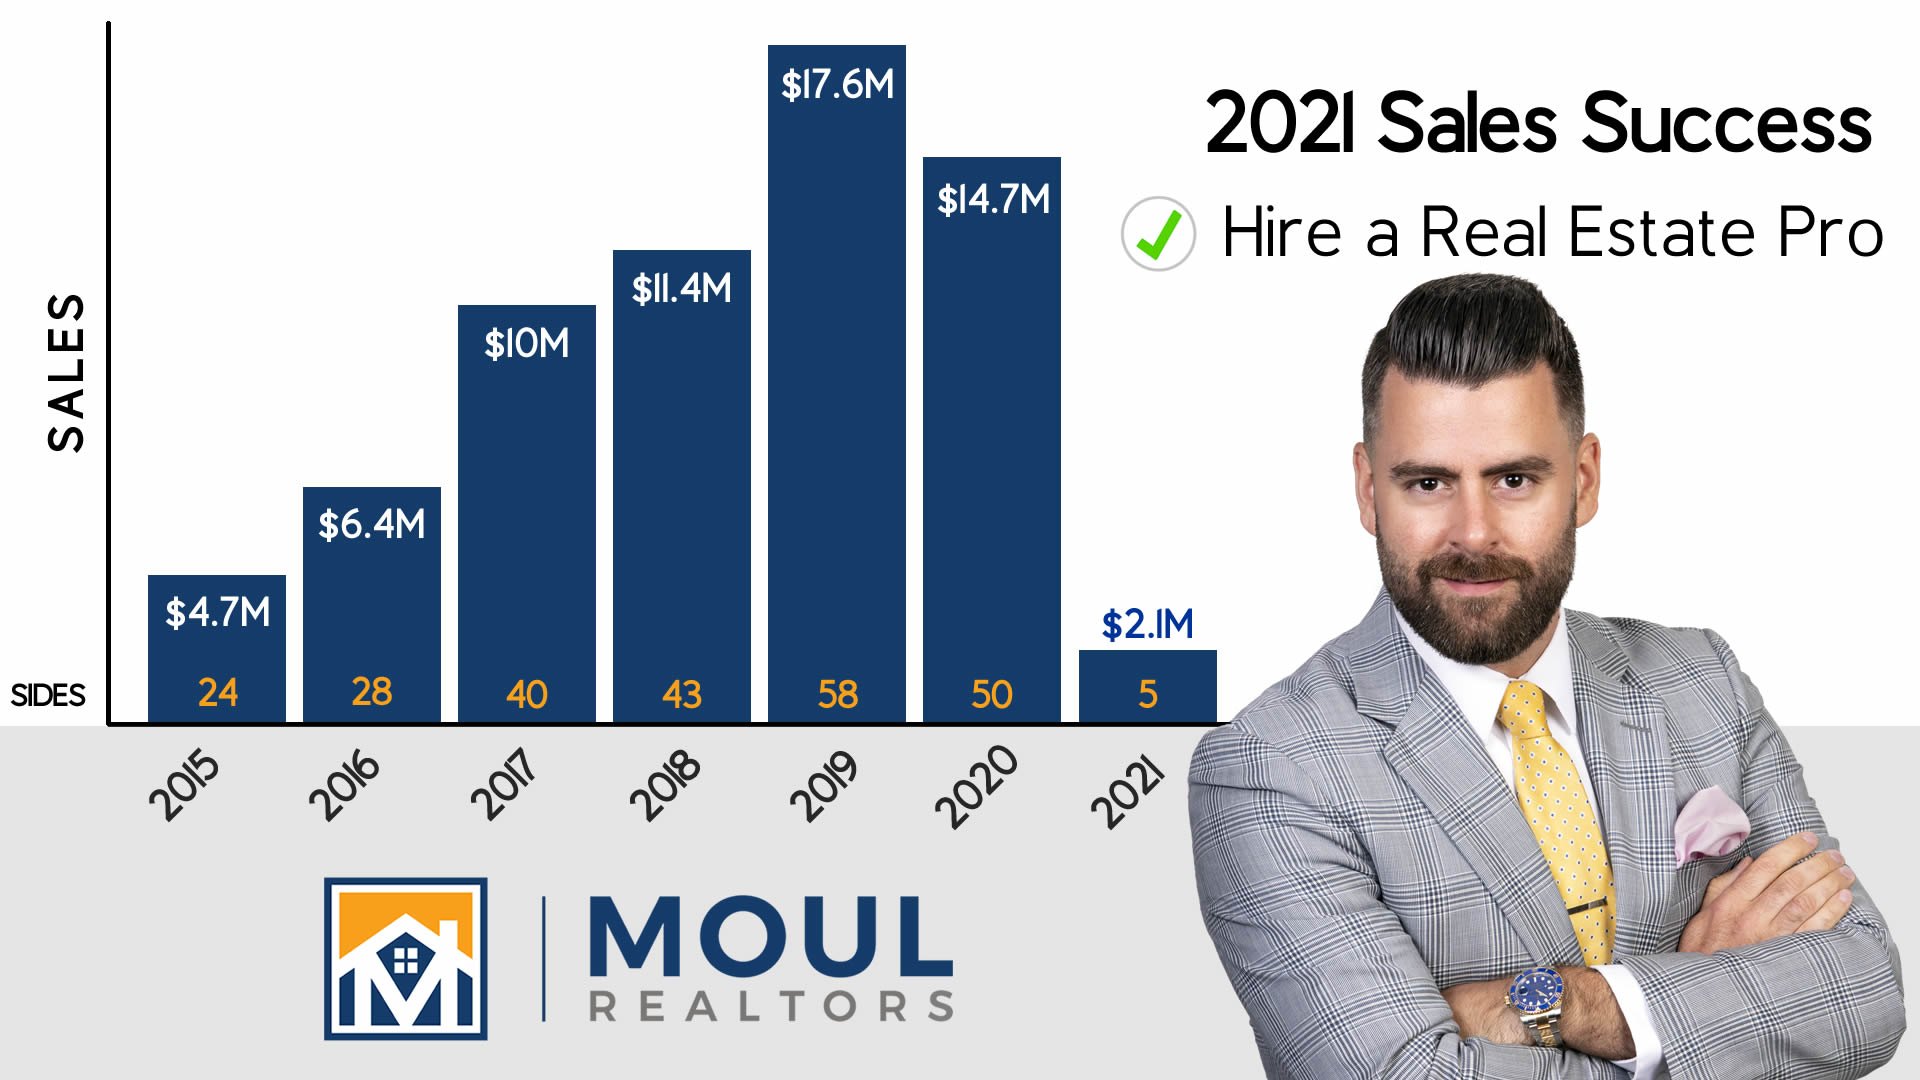 Robert Moul Sales Success